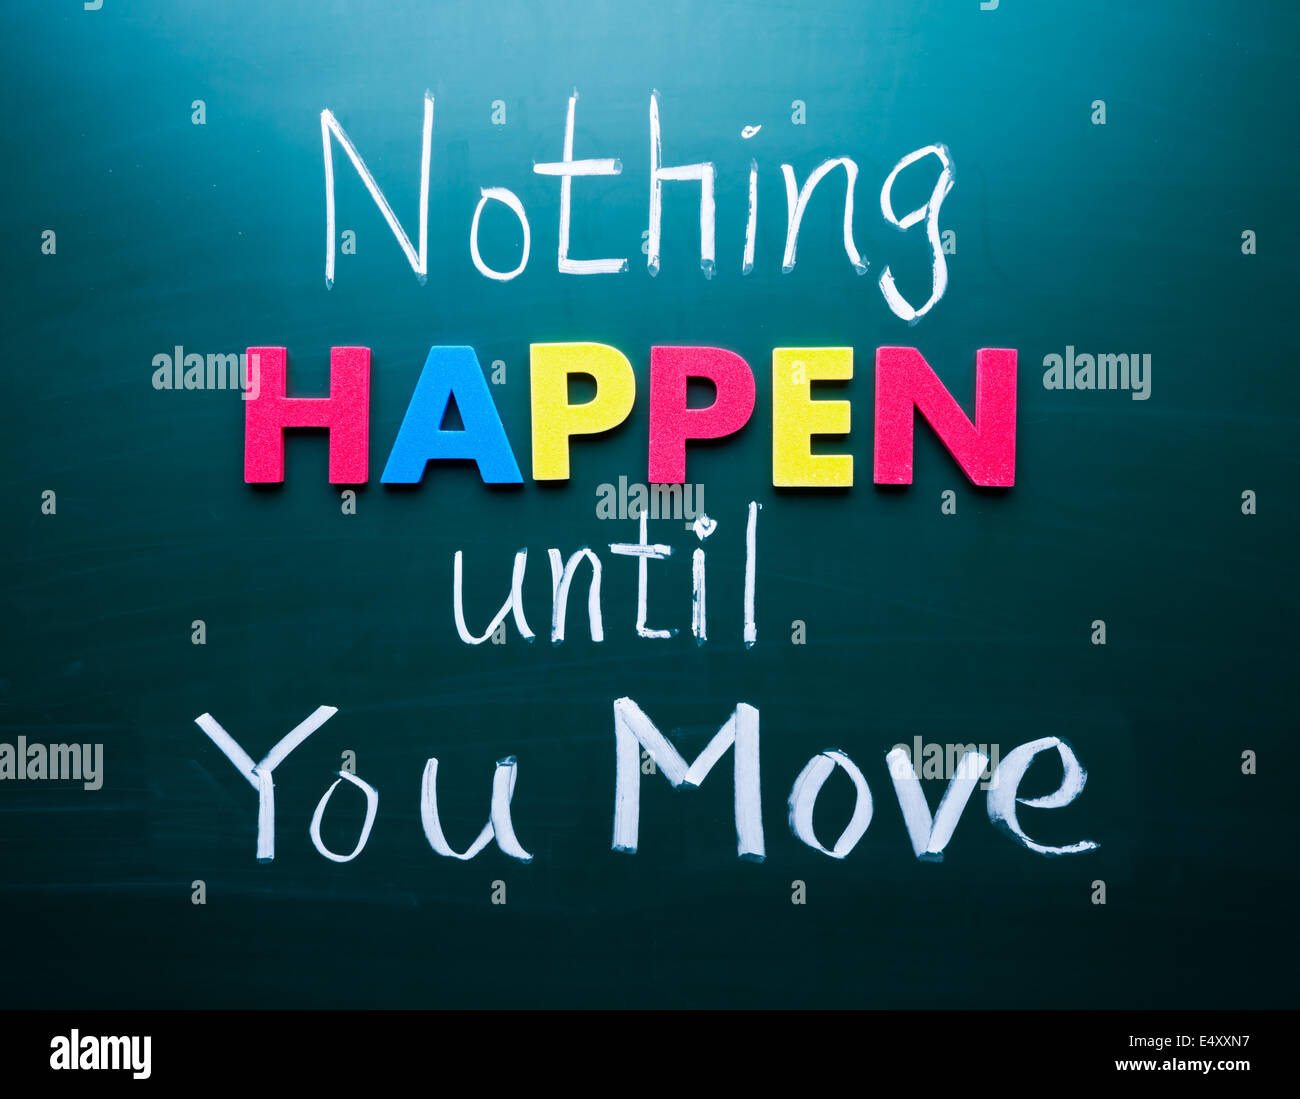 Nothing happen until you move - Stock Image